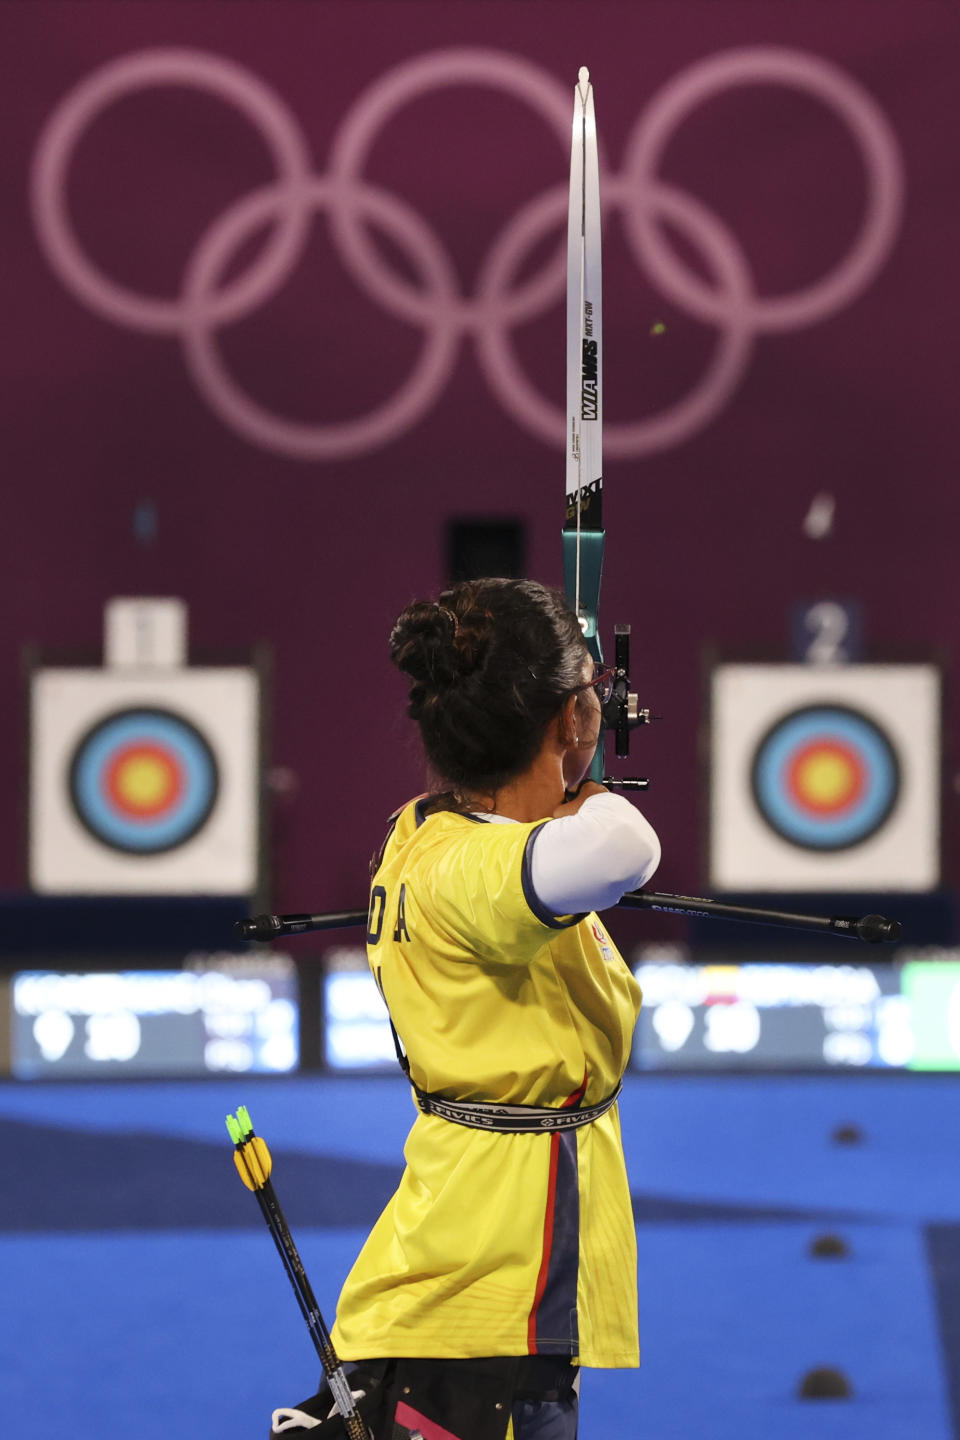 <p>TOKYO, JAPAN - JULY 28: Adriana Espinosa de los Monteros of Team Ecuador competes in the archery Women's Individual 1/32 Eliminations on day five of the Tokyo 2020 Olympic Games at Yumenoshima Park Archery Field on July 28, 2021 in Tokyo, Japan. (Photo by Justin Setterfield/Getty Images)</p>